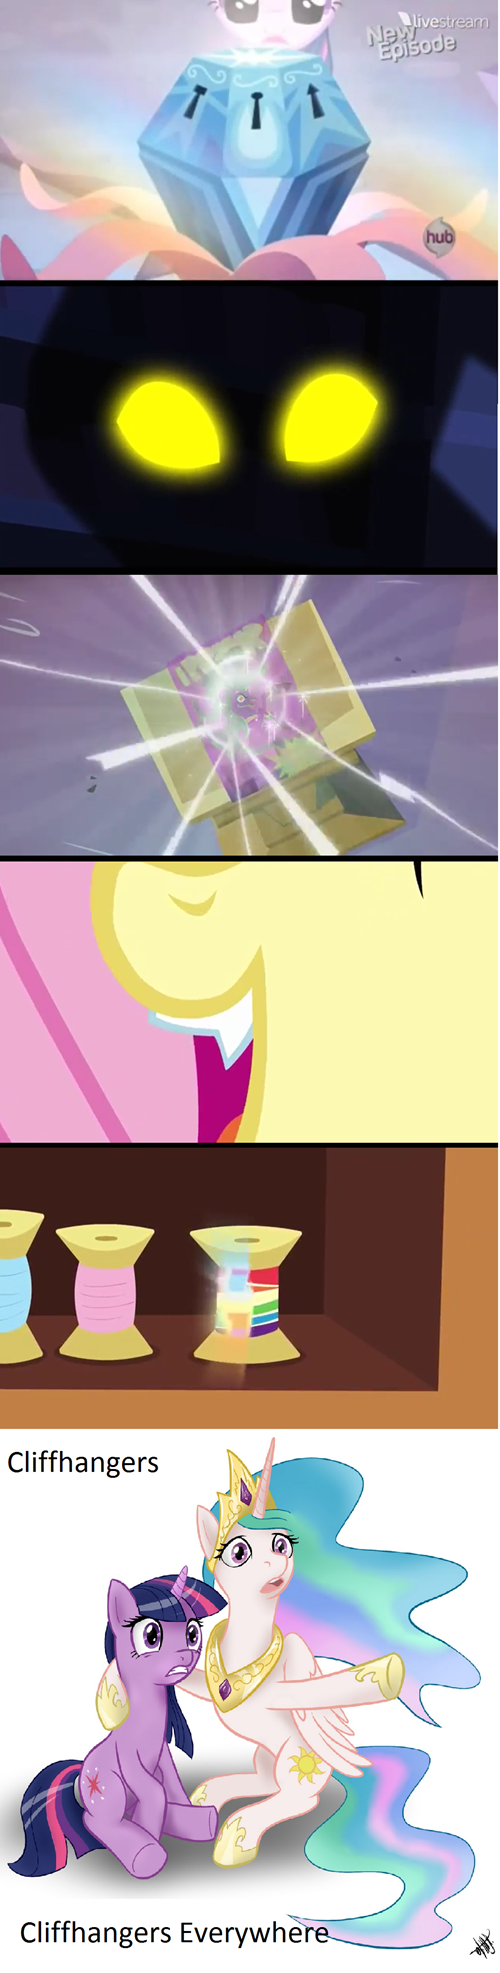 mlp season 4 clifhanger the last thirty seconds - 7990337280